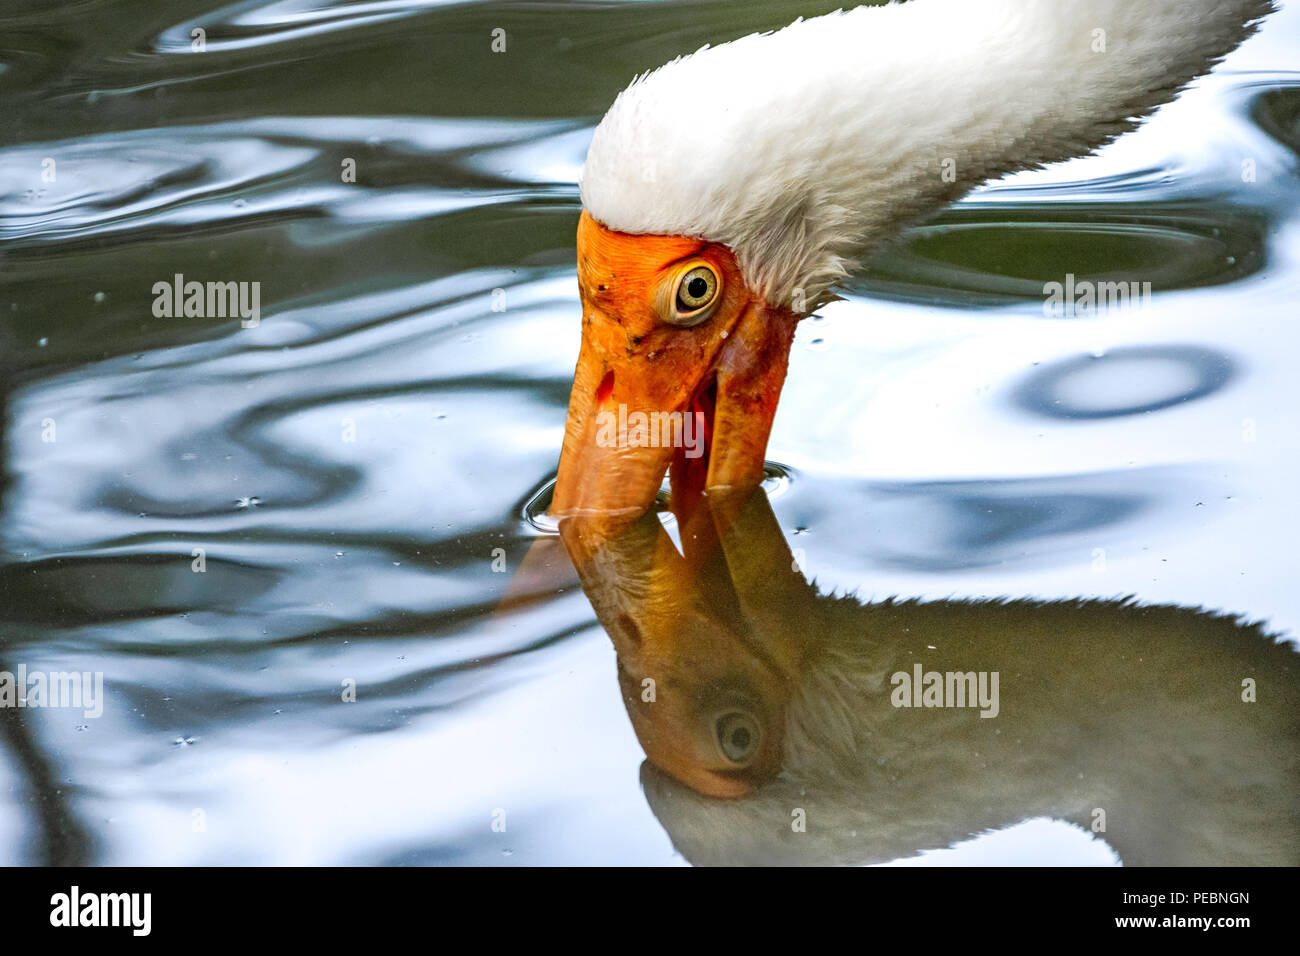 Milky stork with his long orange beak in the water, and his reflection - Stock Image